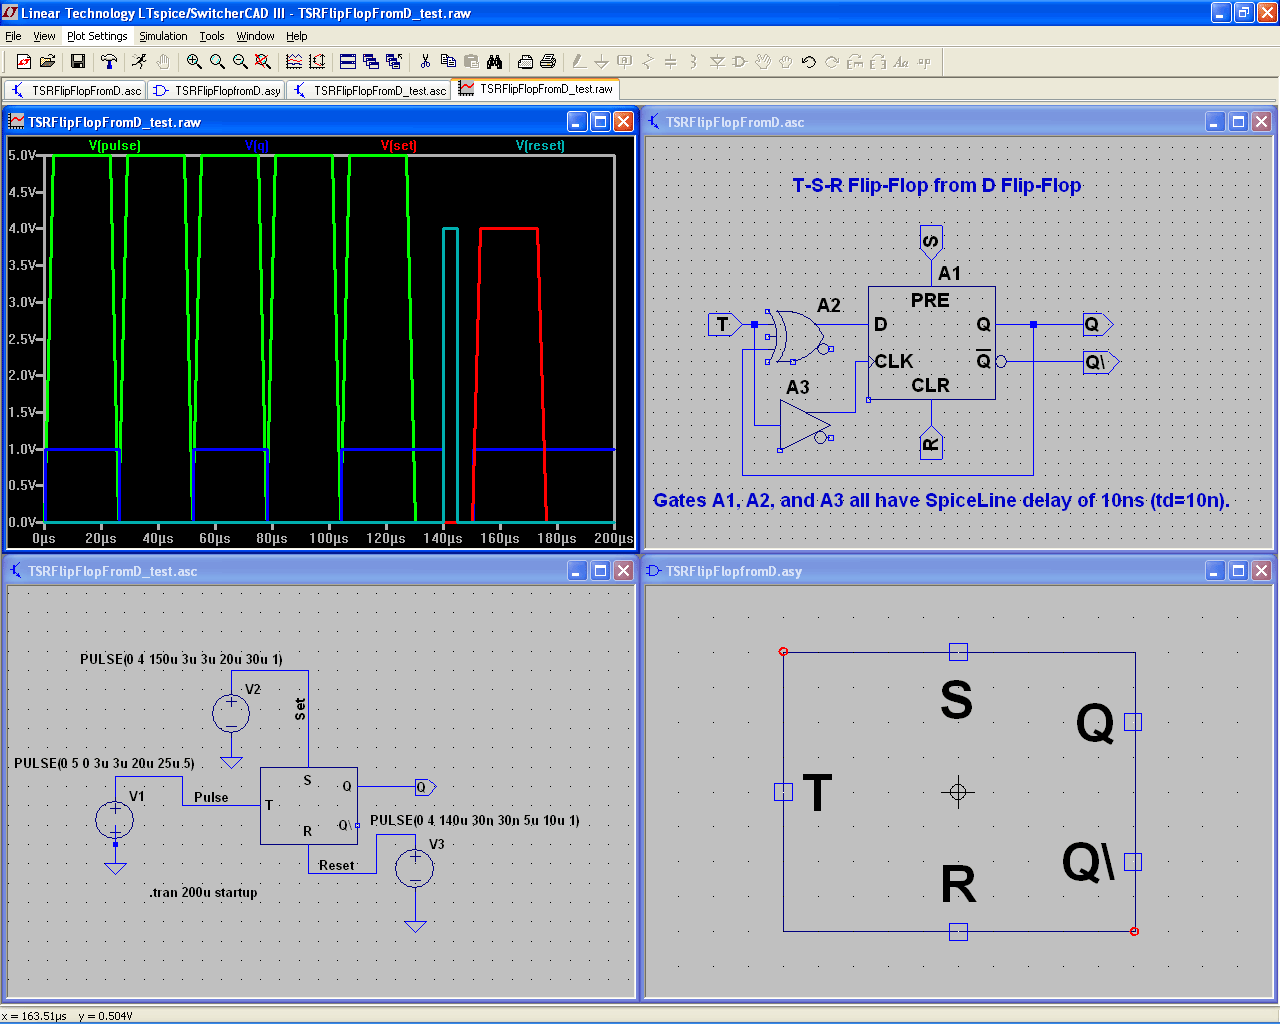 LTspice/SwitcherCAD III circuit diagram, waveforms, and cursor measurements - Large